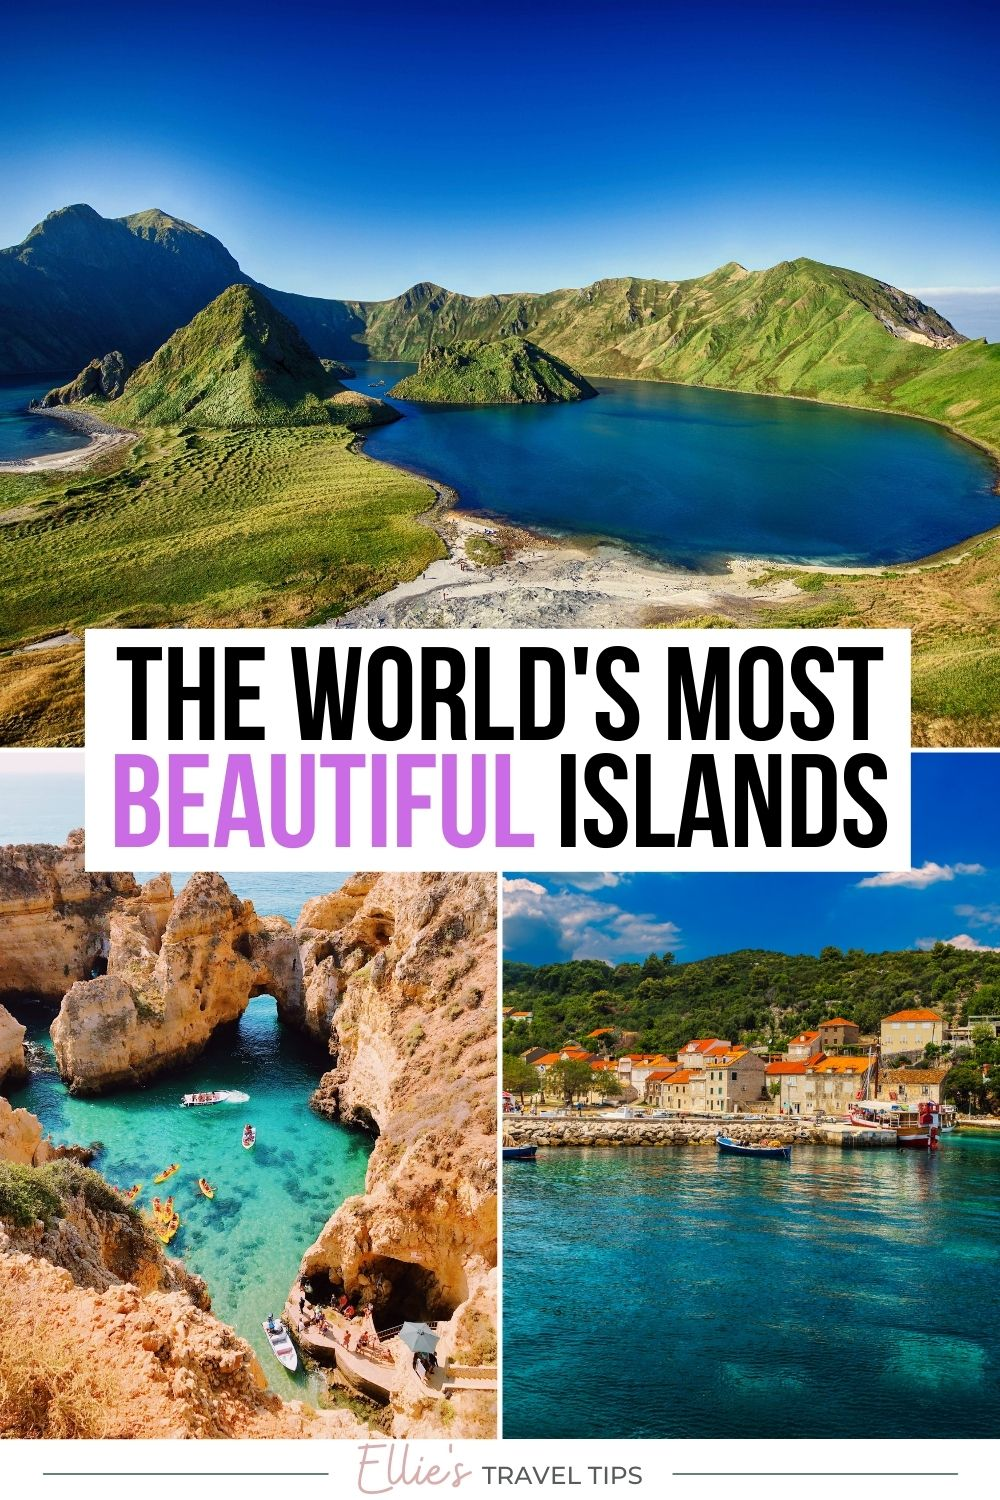 the world's most beautiful islands pin